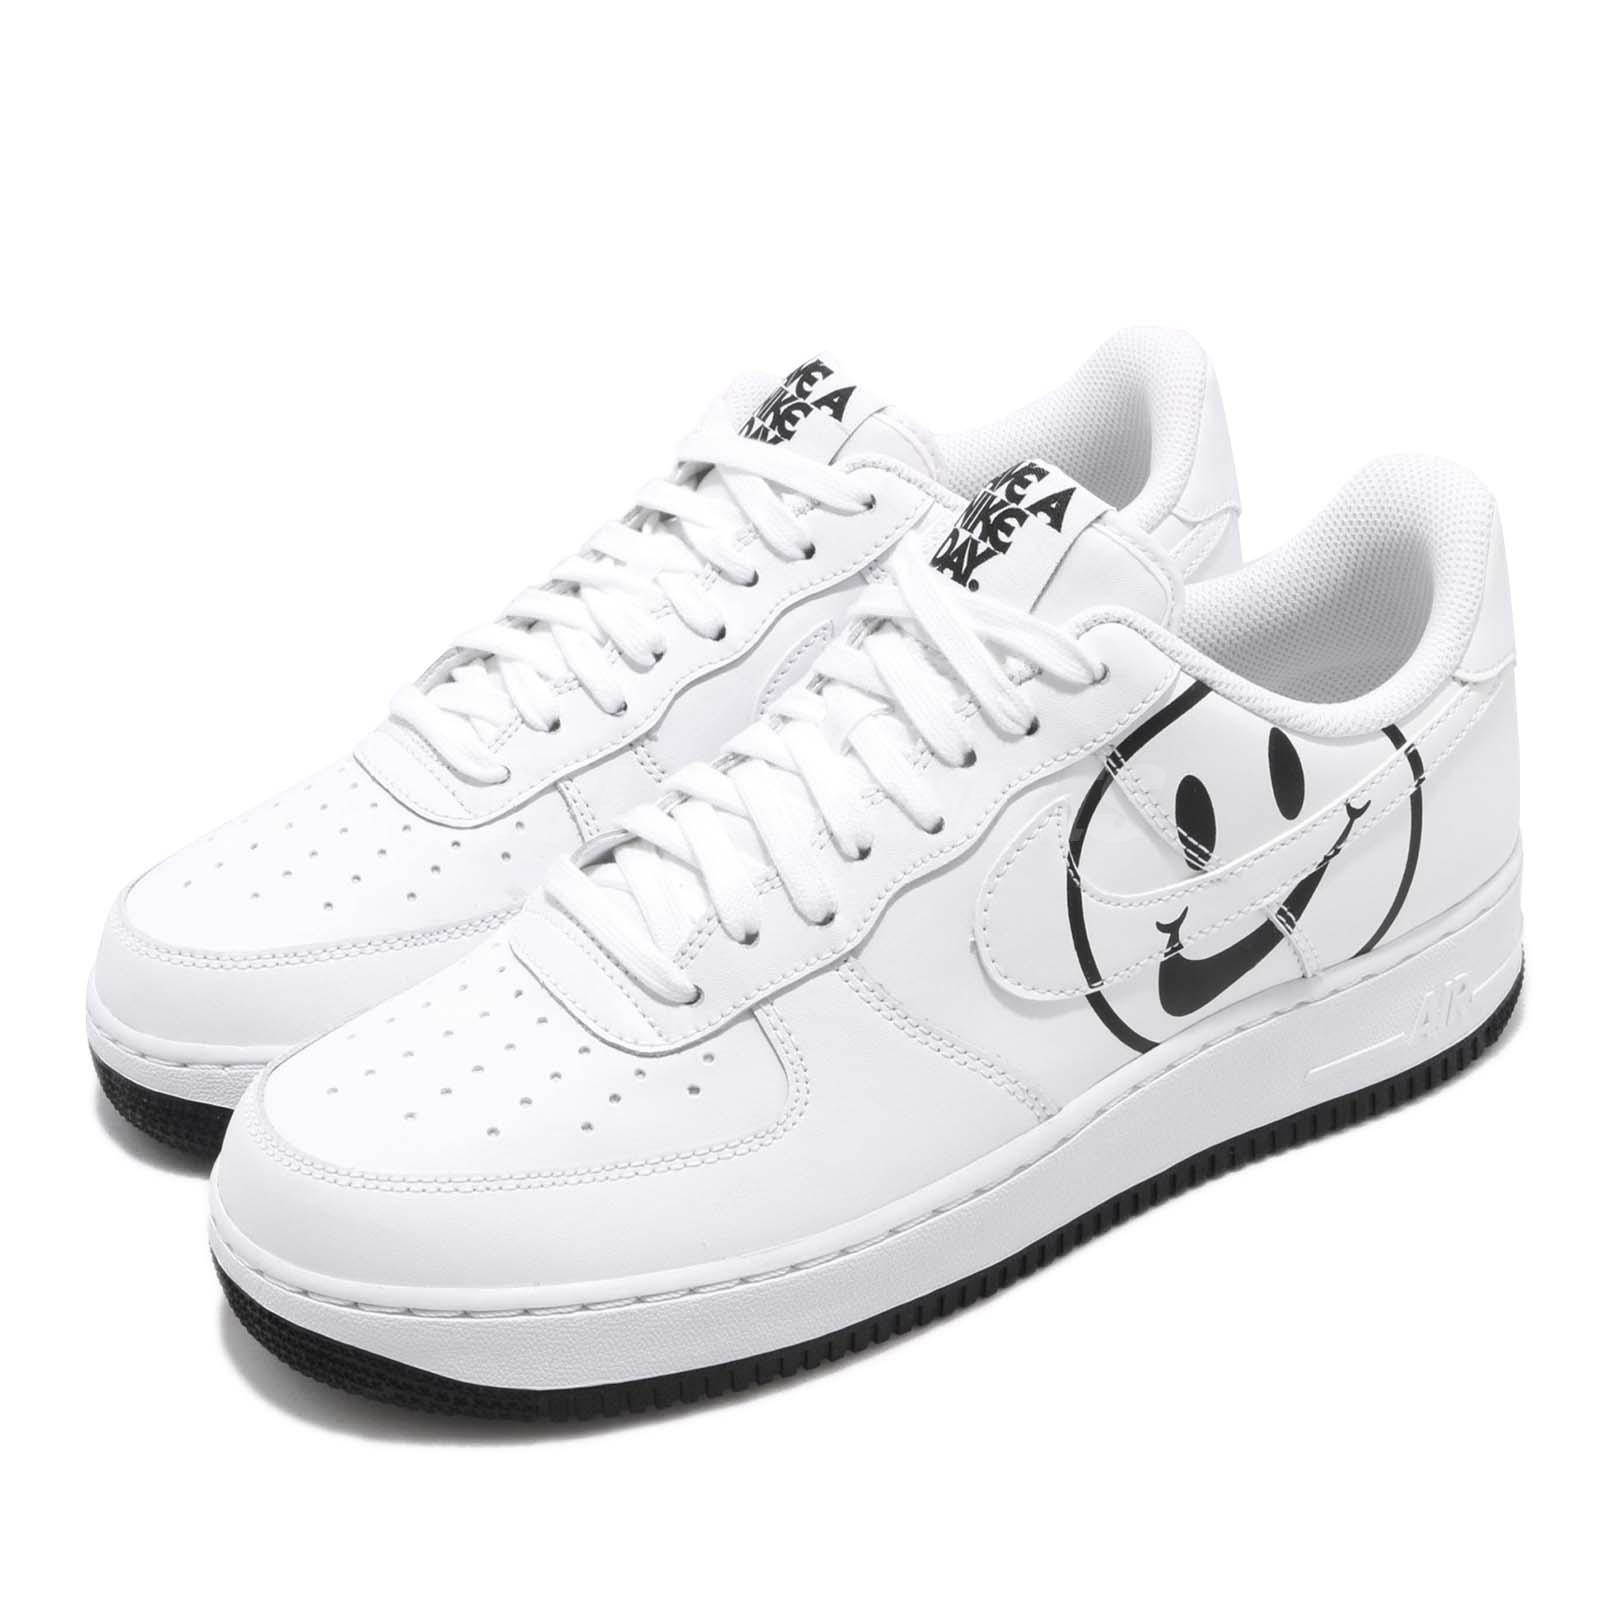 sale retailer 50a59 d74d5 Details about Nike Air Force 1 07 LV8 ND AF1 Have A Nike Day White Black  Men Shoes BQ9044-100